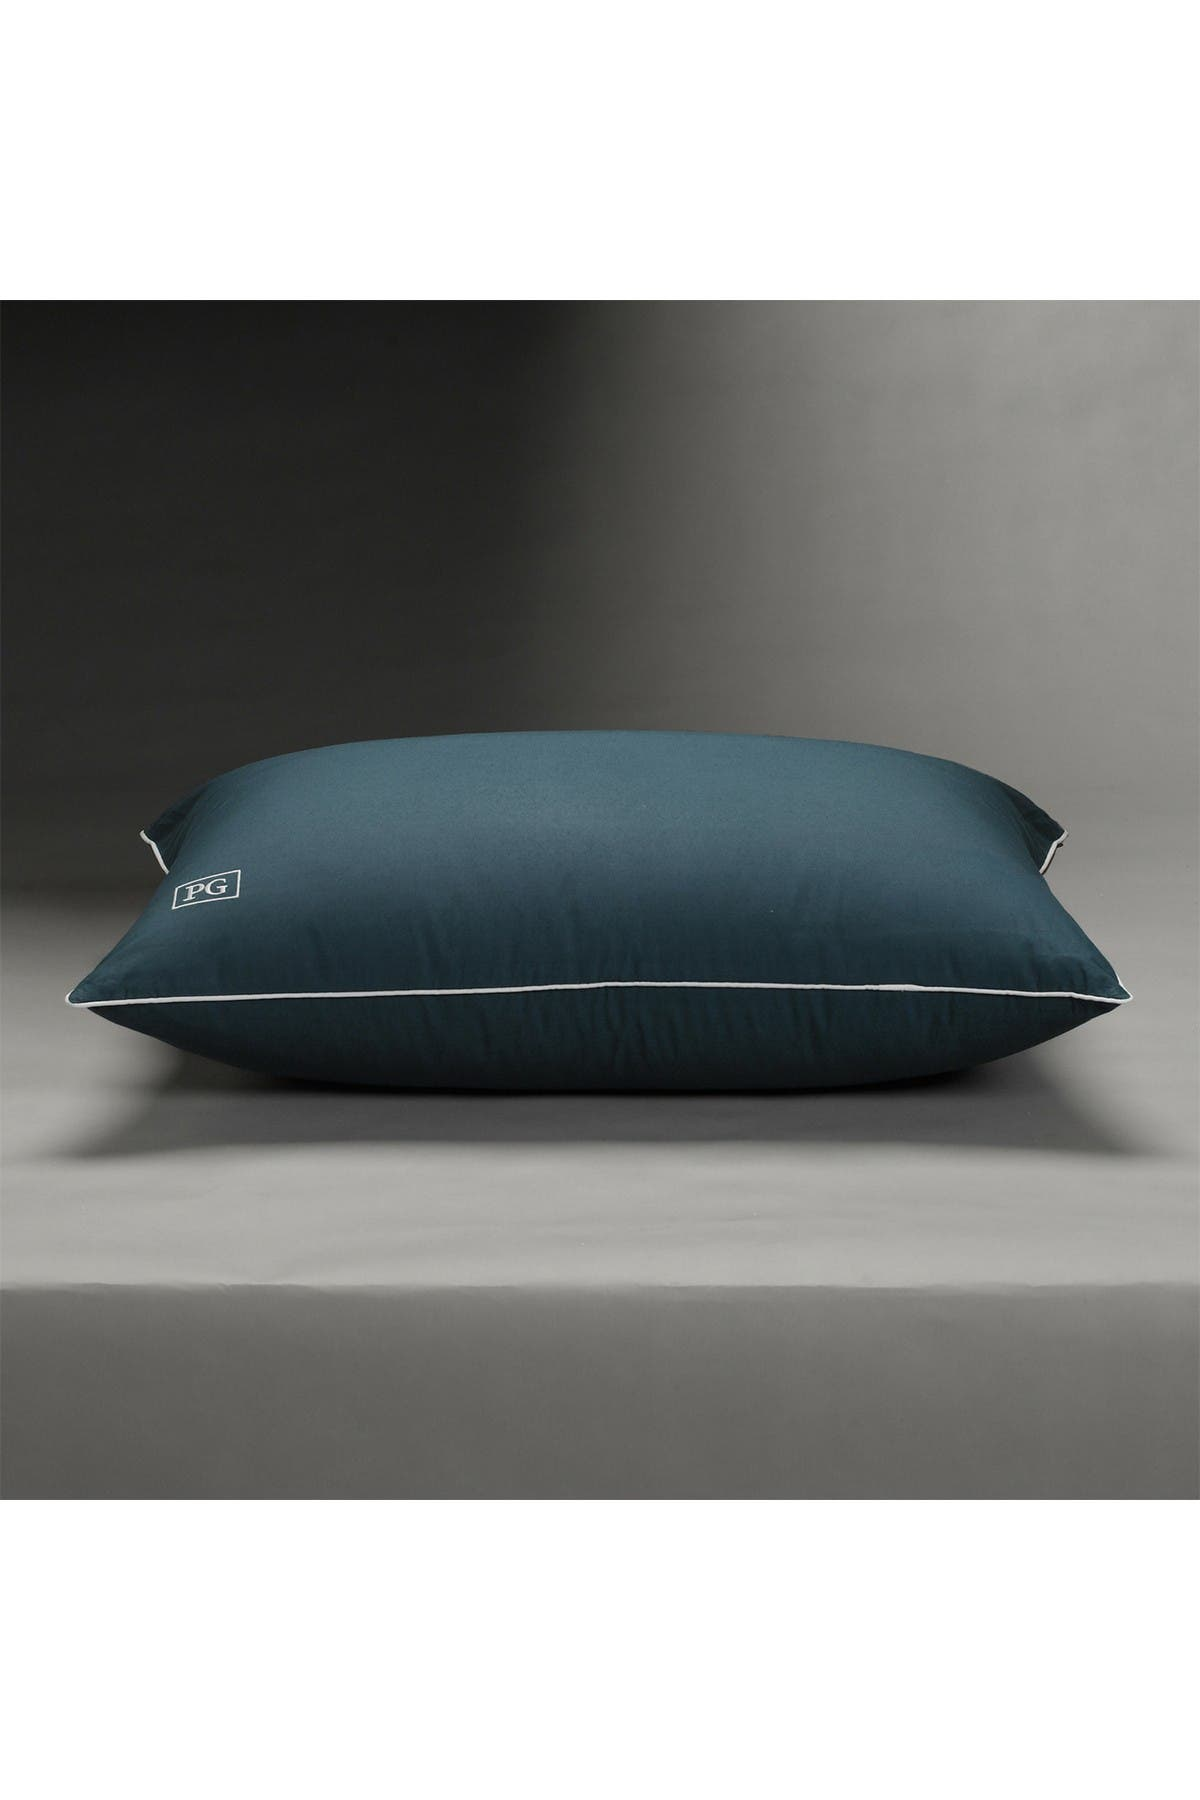 Image of Pillow Guy Down Alternative Stomach Sleeper Soft Pillow with MicronOne   Technology - Standard/Queen Size